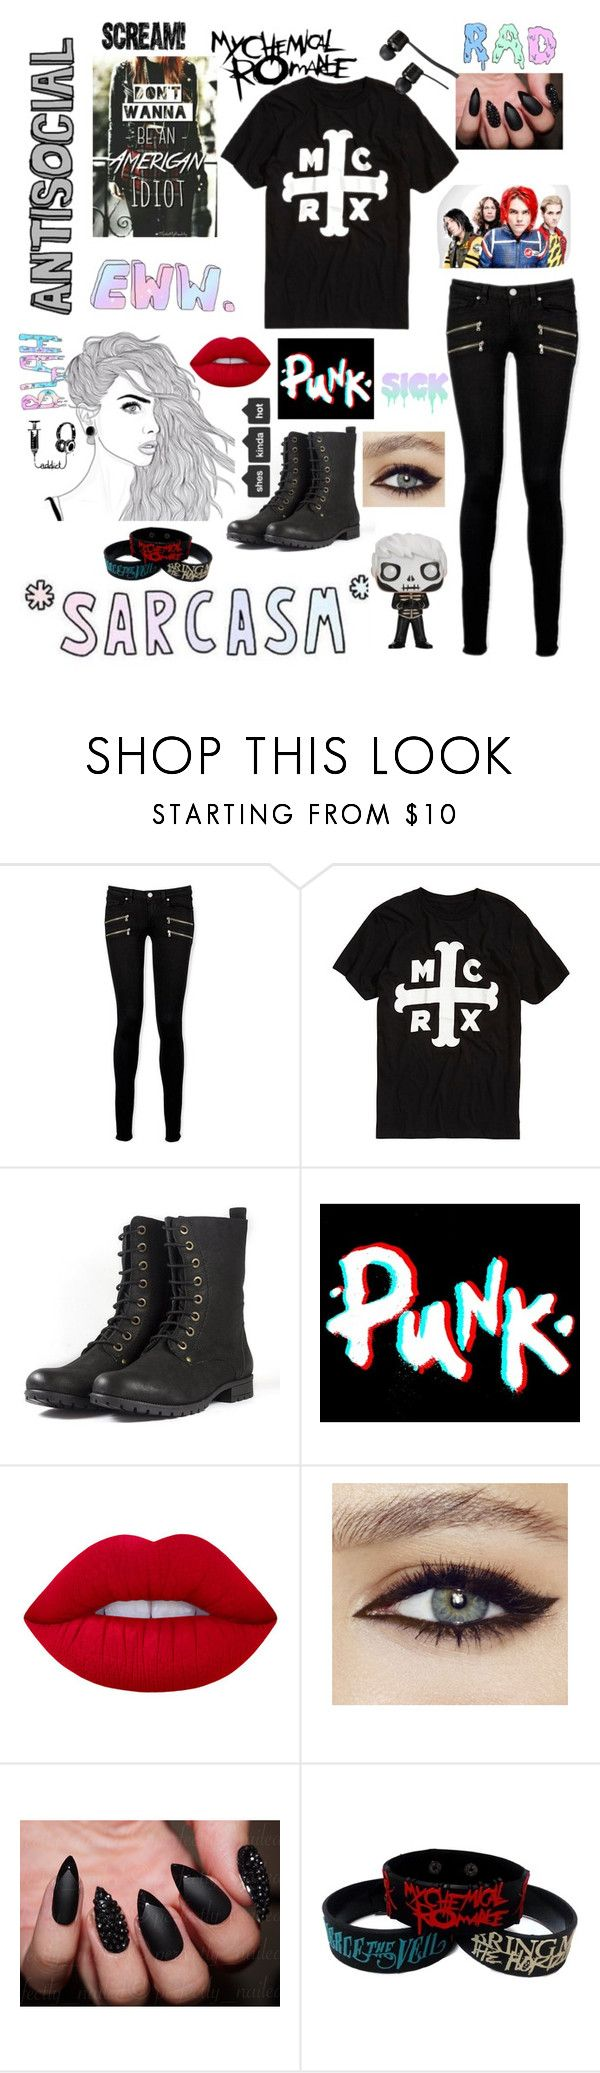 """Untitled #151"" by that-goth-cutie ❤ liked on Polyvore featuring Paige Denim, Lime Crime and Vans"